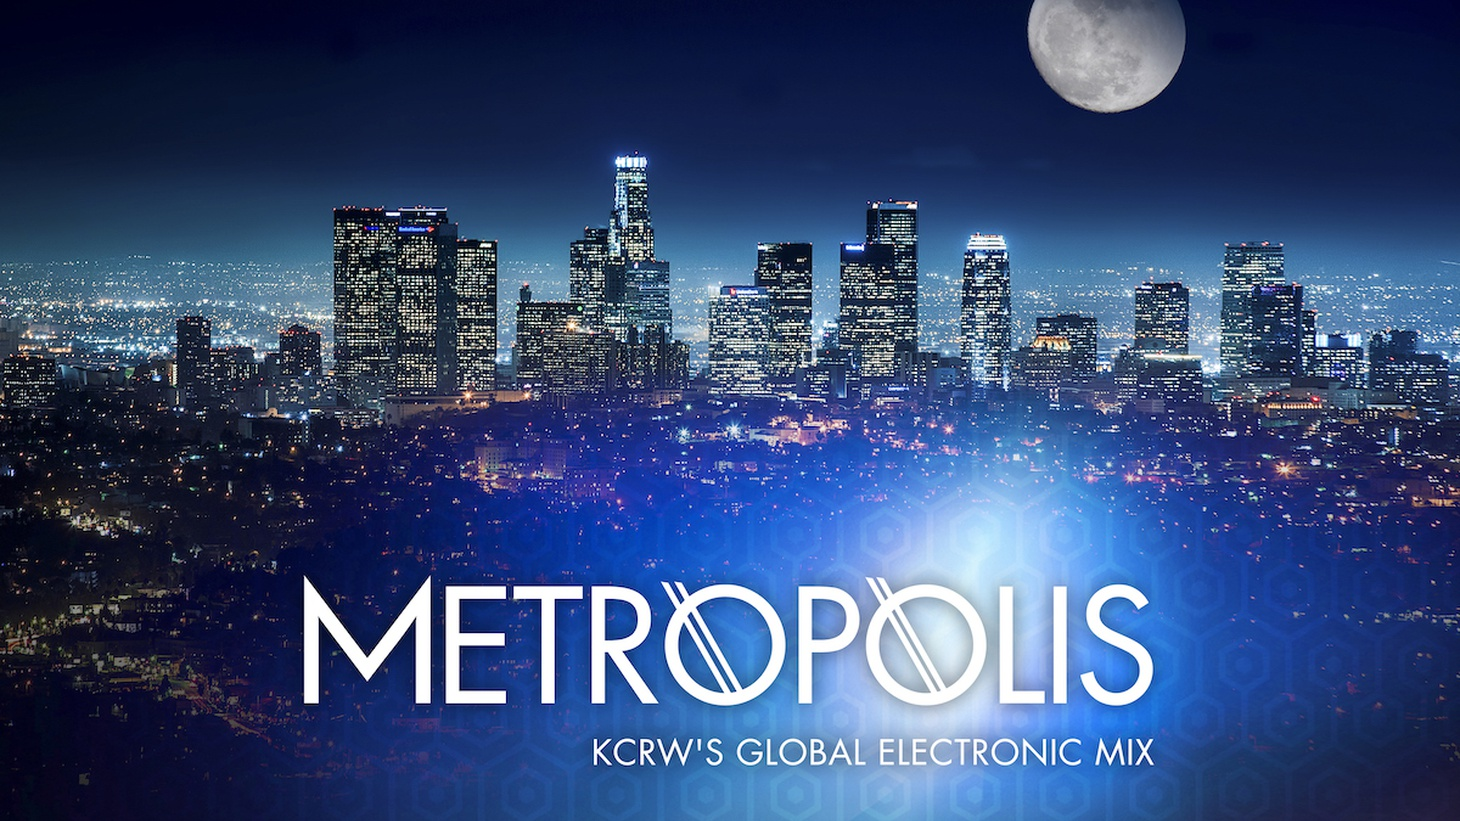 L.A. based duo, The Crystal Method steps into Metropolis for a visit during the 9:00pm hour to talk about their new album Legion of Boom.